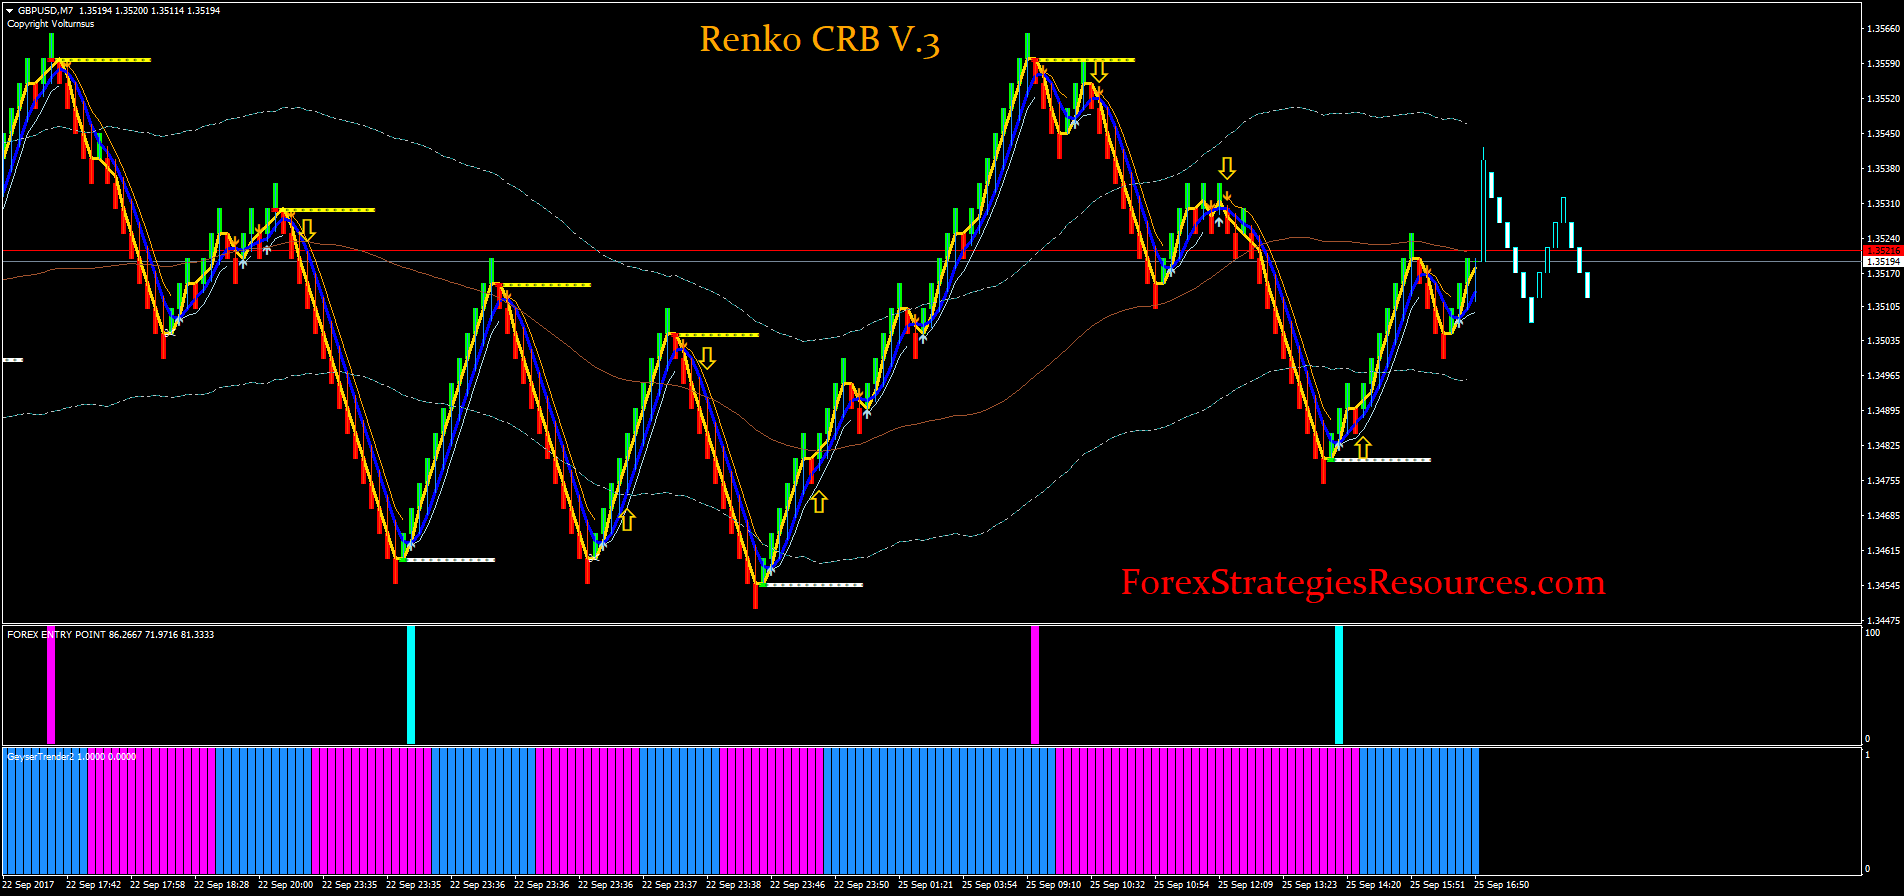 Renko CRB V 3 - Forex Strategies - Forex Resources - Forex Trading